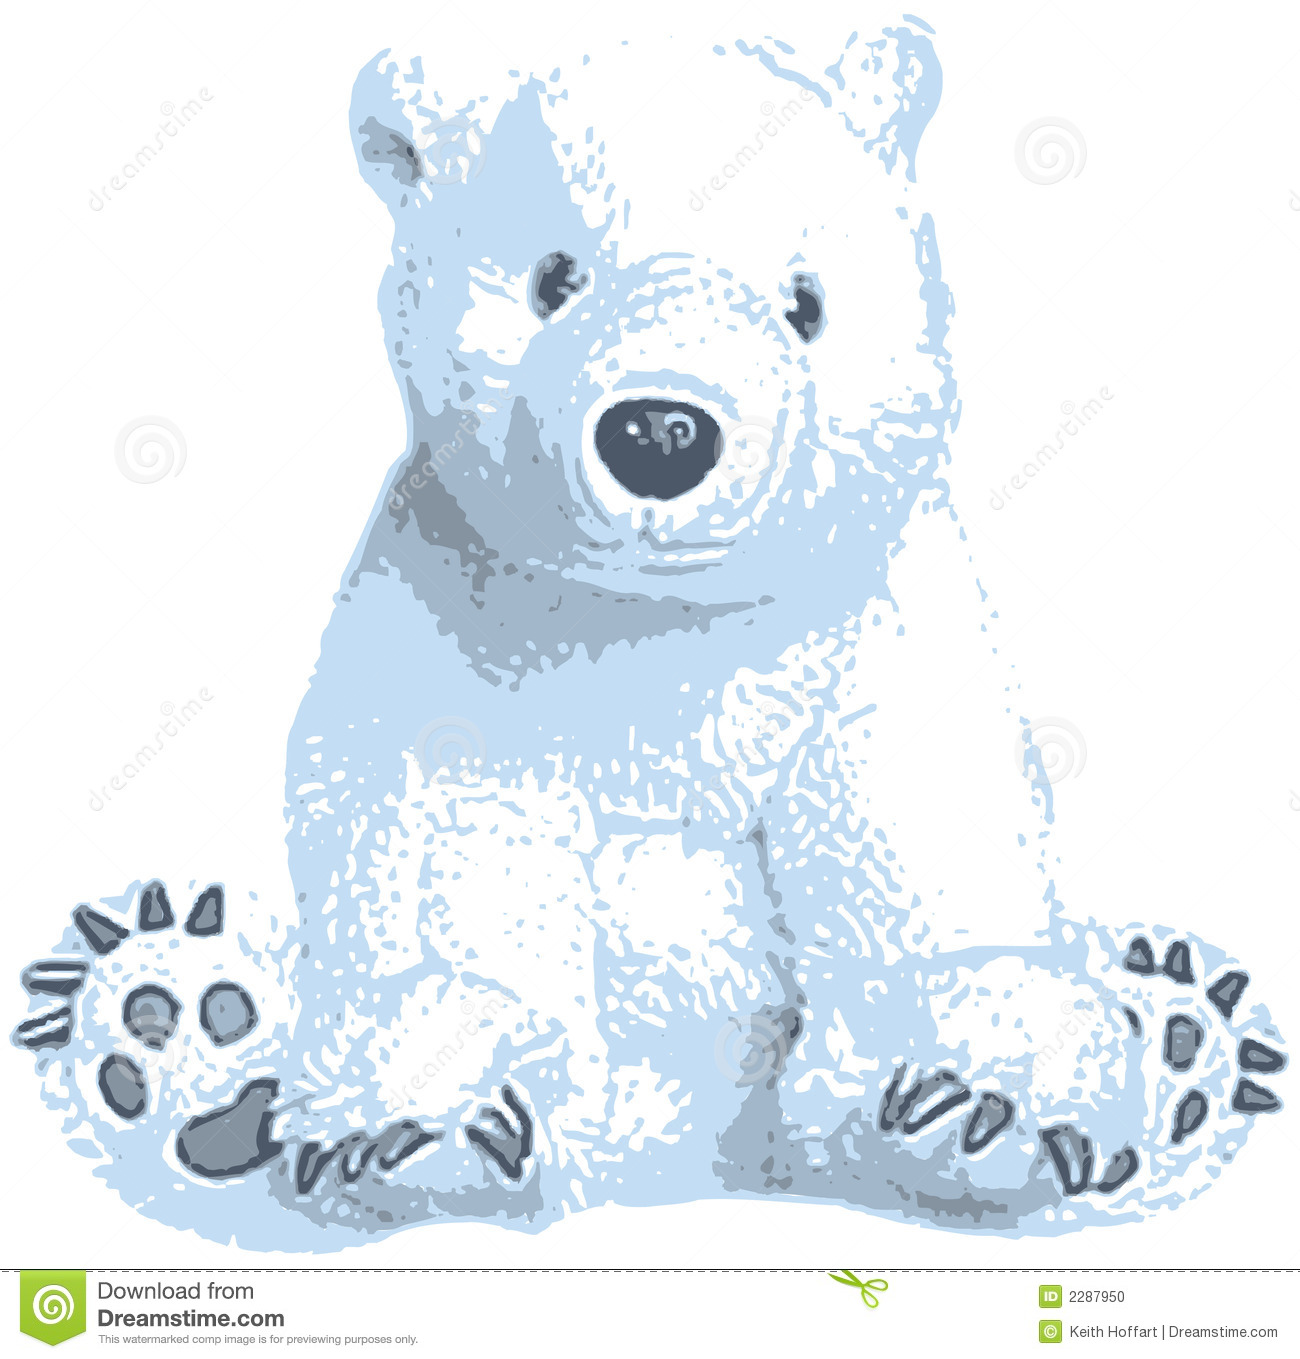 Polar Bear Clip Art Design Illustration For Use In Web And Print Jobs